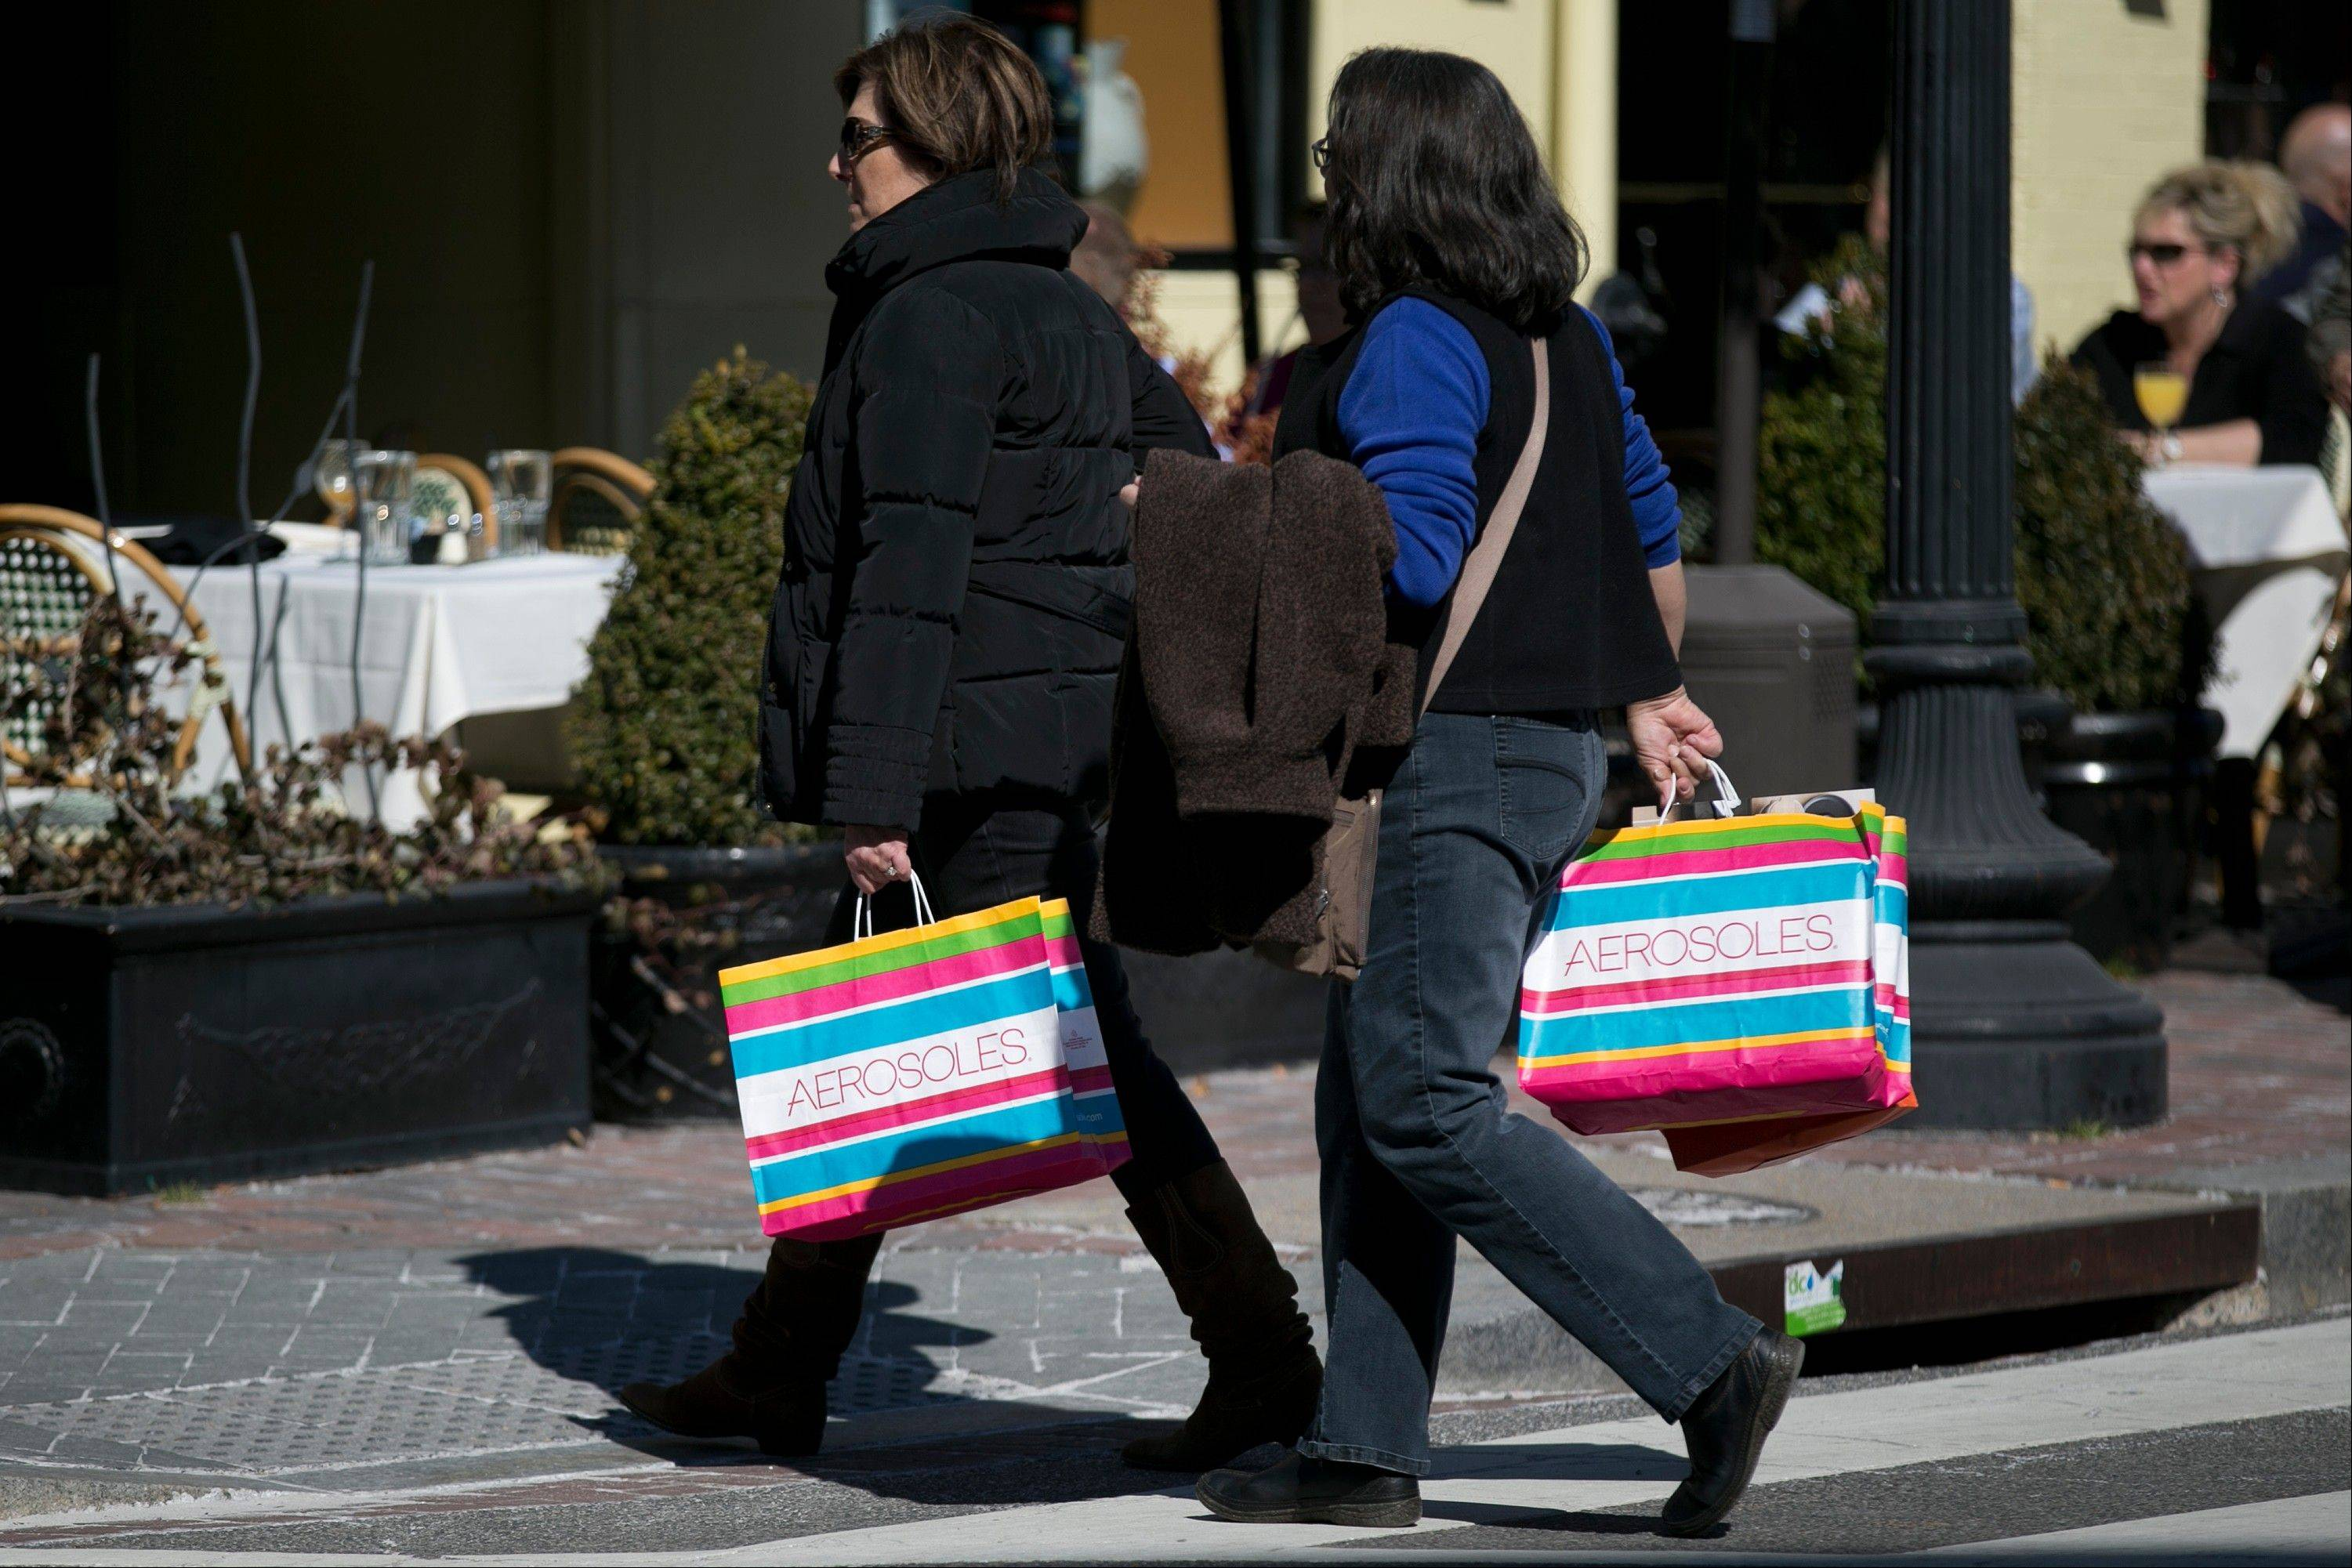 Bloomberg News file photoWomen carry Aerosoles shopping bags in the Georgetown neighborhood of Washington, D.C. Americans spent at the fastest pace in five months in February, boosting retail spending 1.1 percent compared with January, the Commerce Department reported Wednesday.